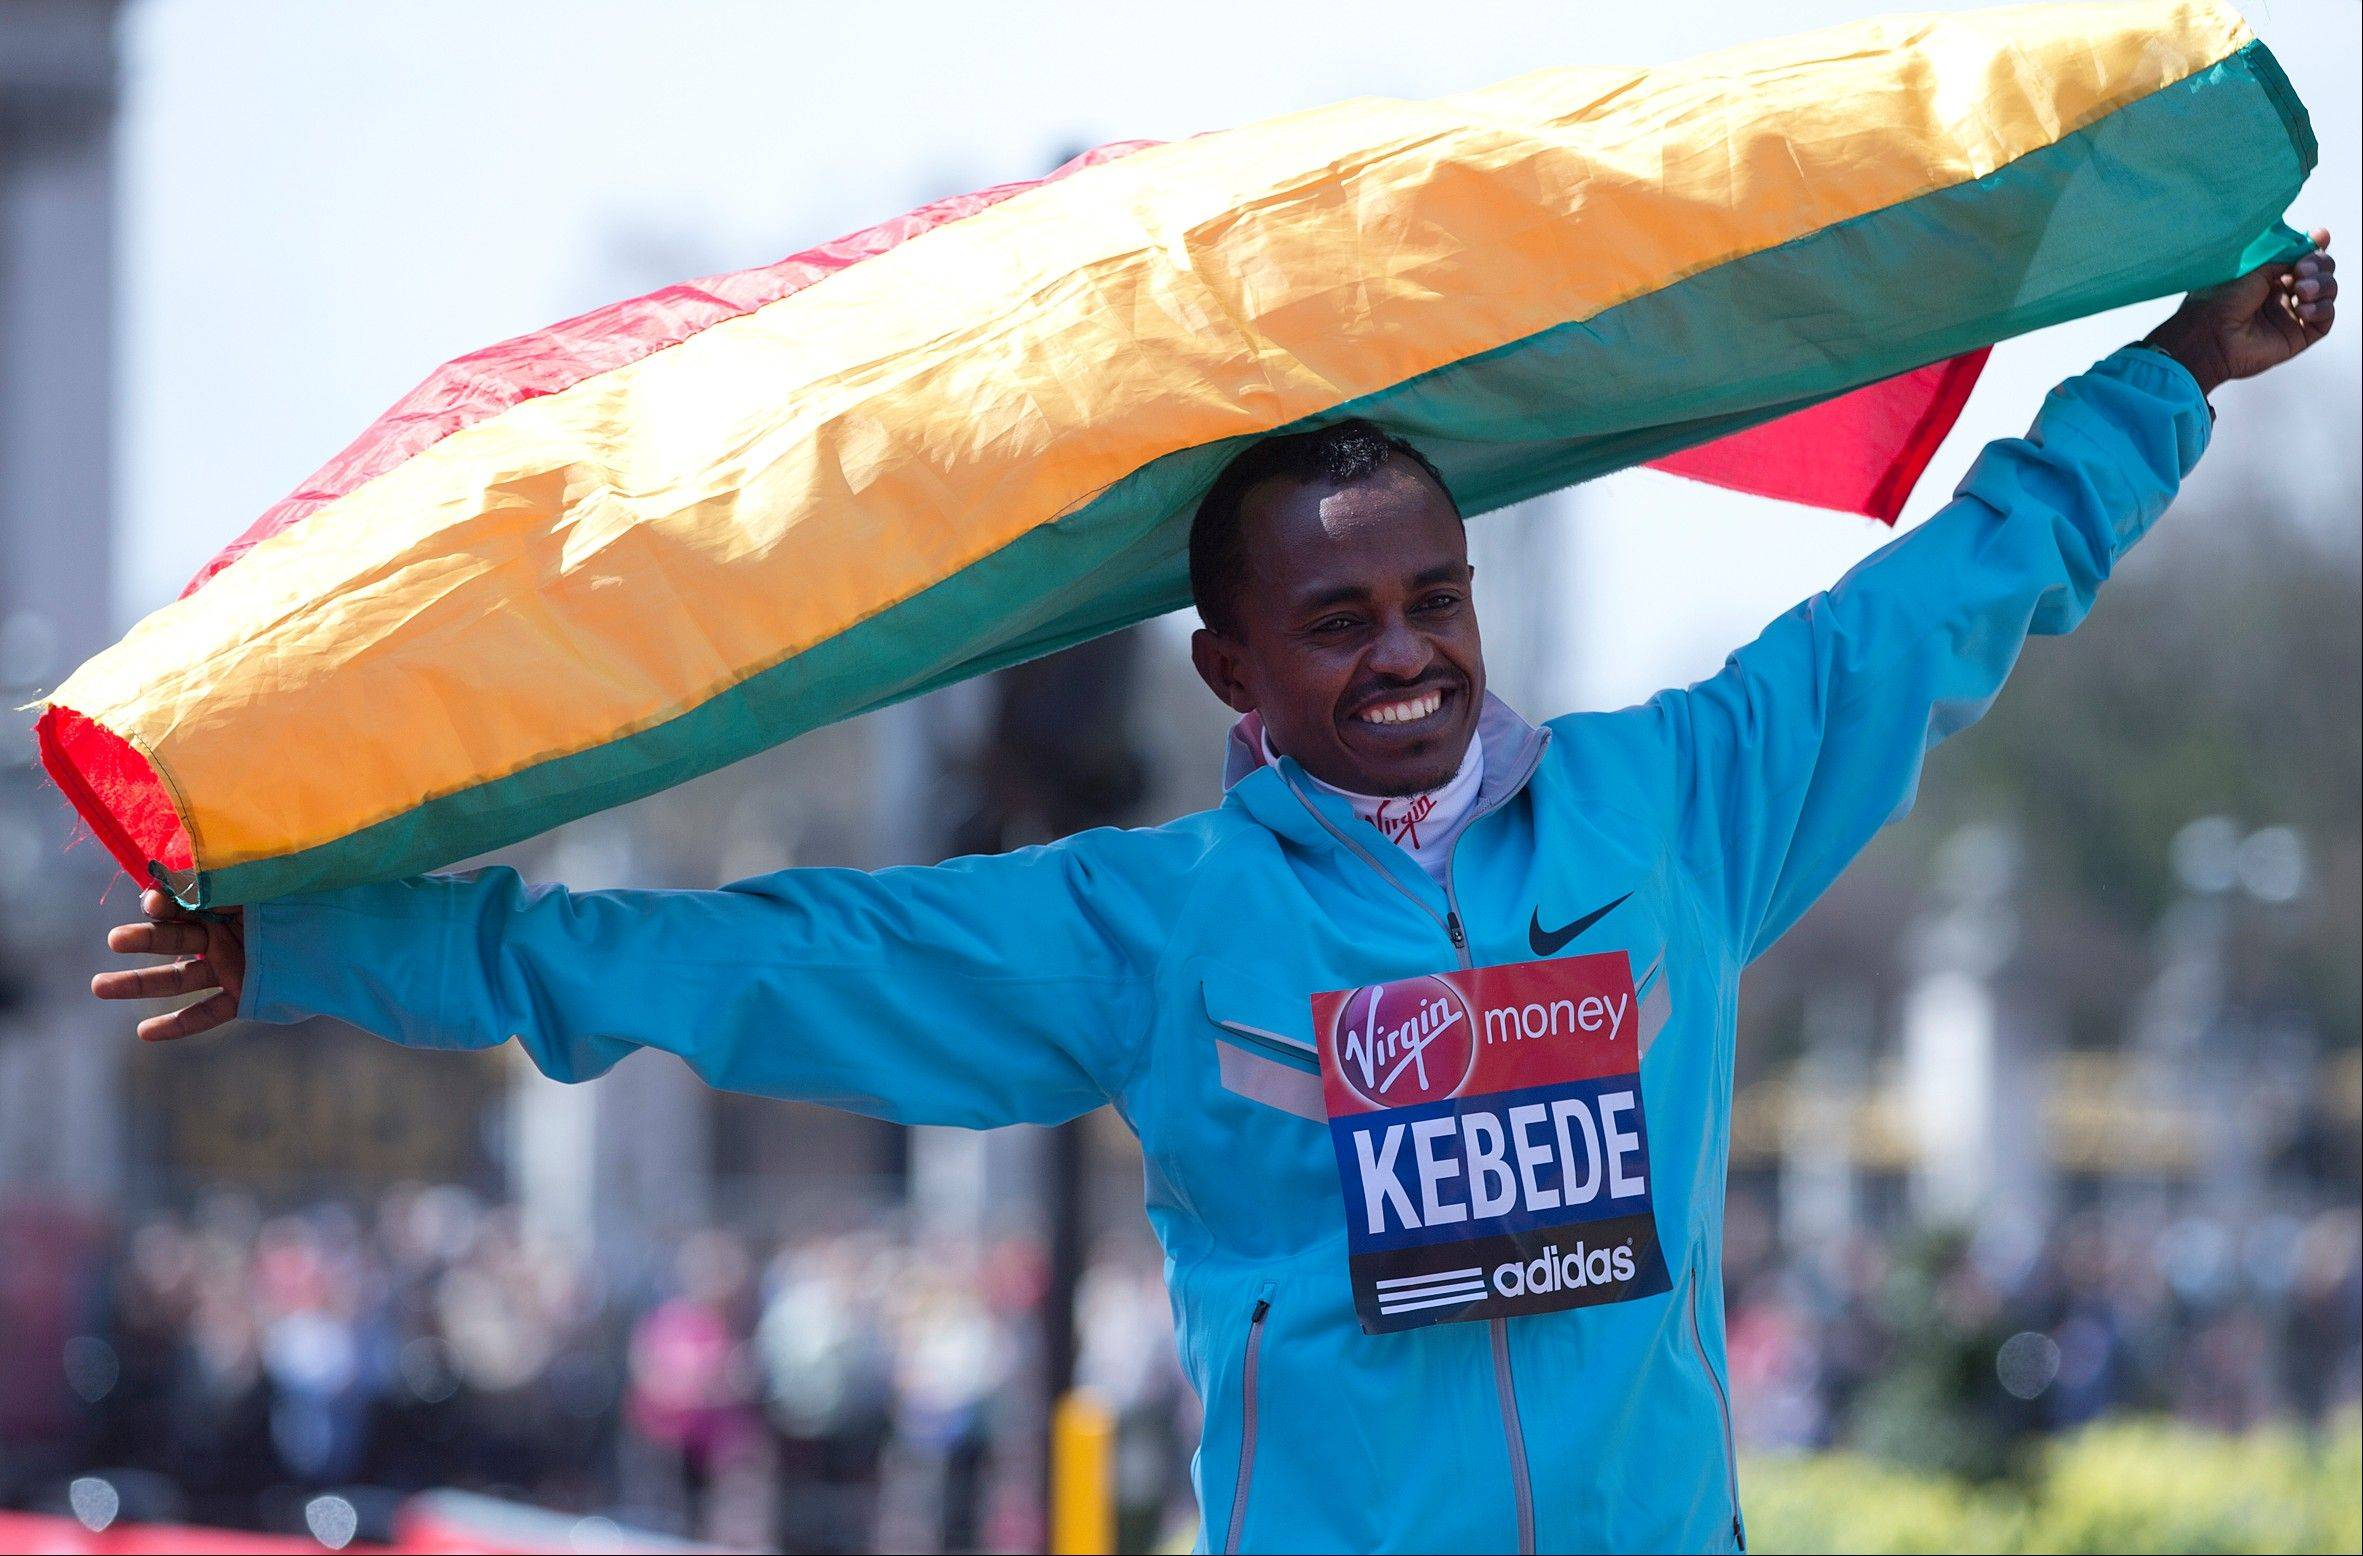 Kebede wins London Marathon amid tight security